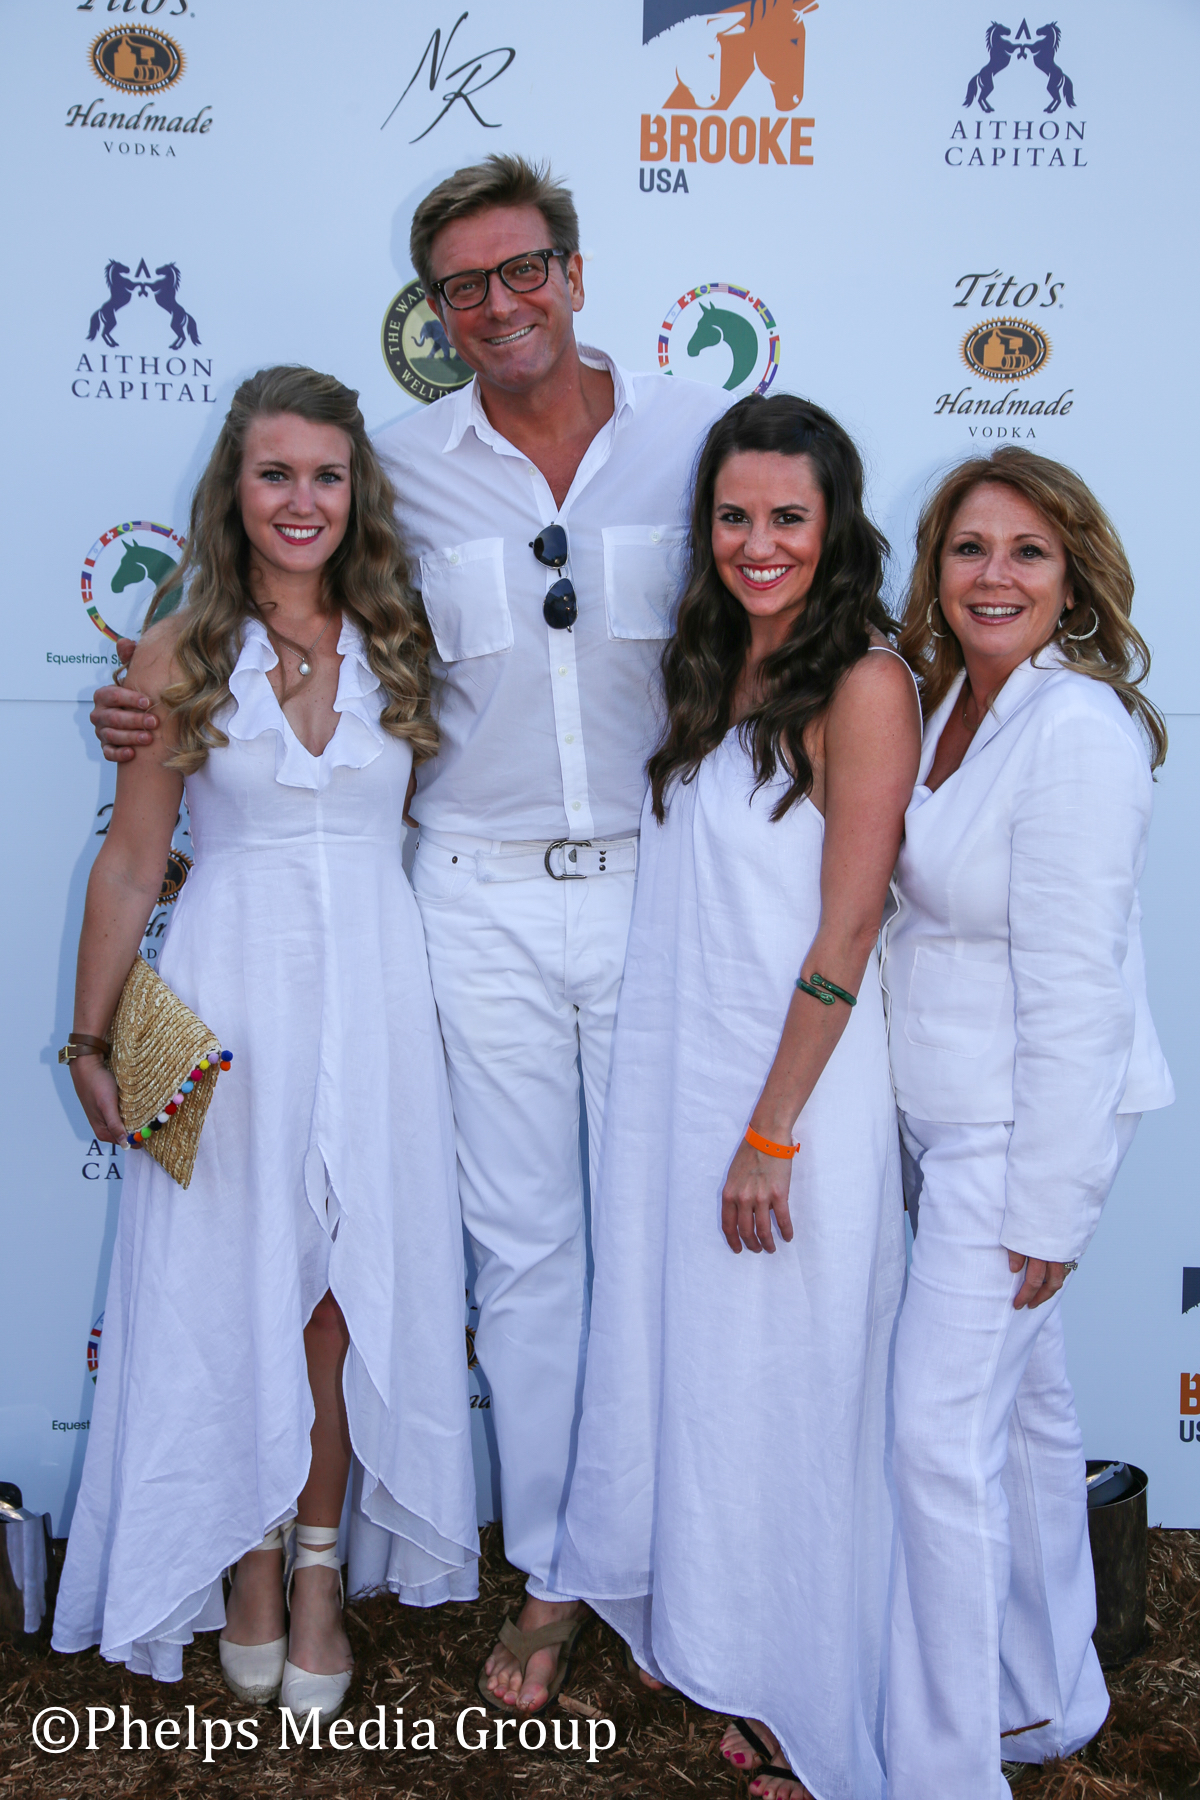 Katie Cherubin Denise Constantino Hugh Treadwell and Liz Wellen; Nic Roldan's 2nd Annual Sunset Polo & White Party, FL, by Phelps Media.jpg